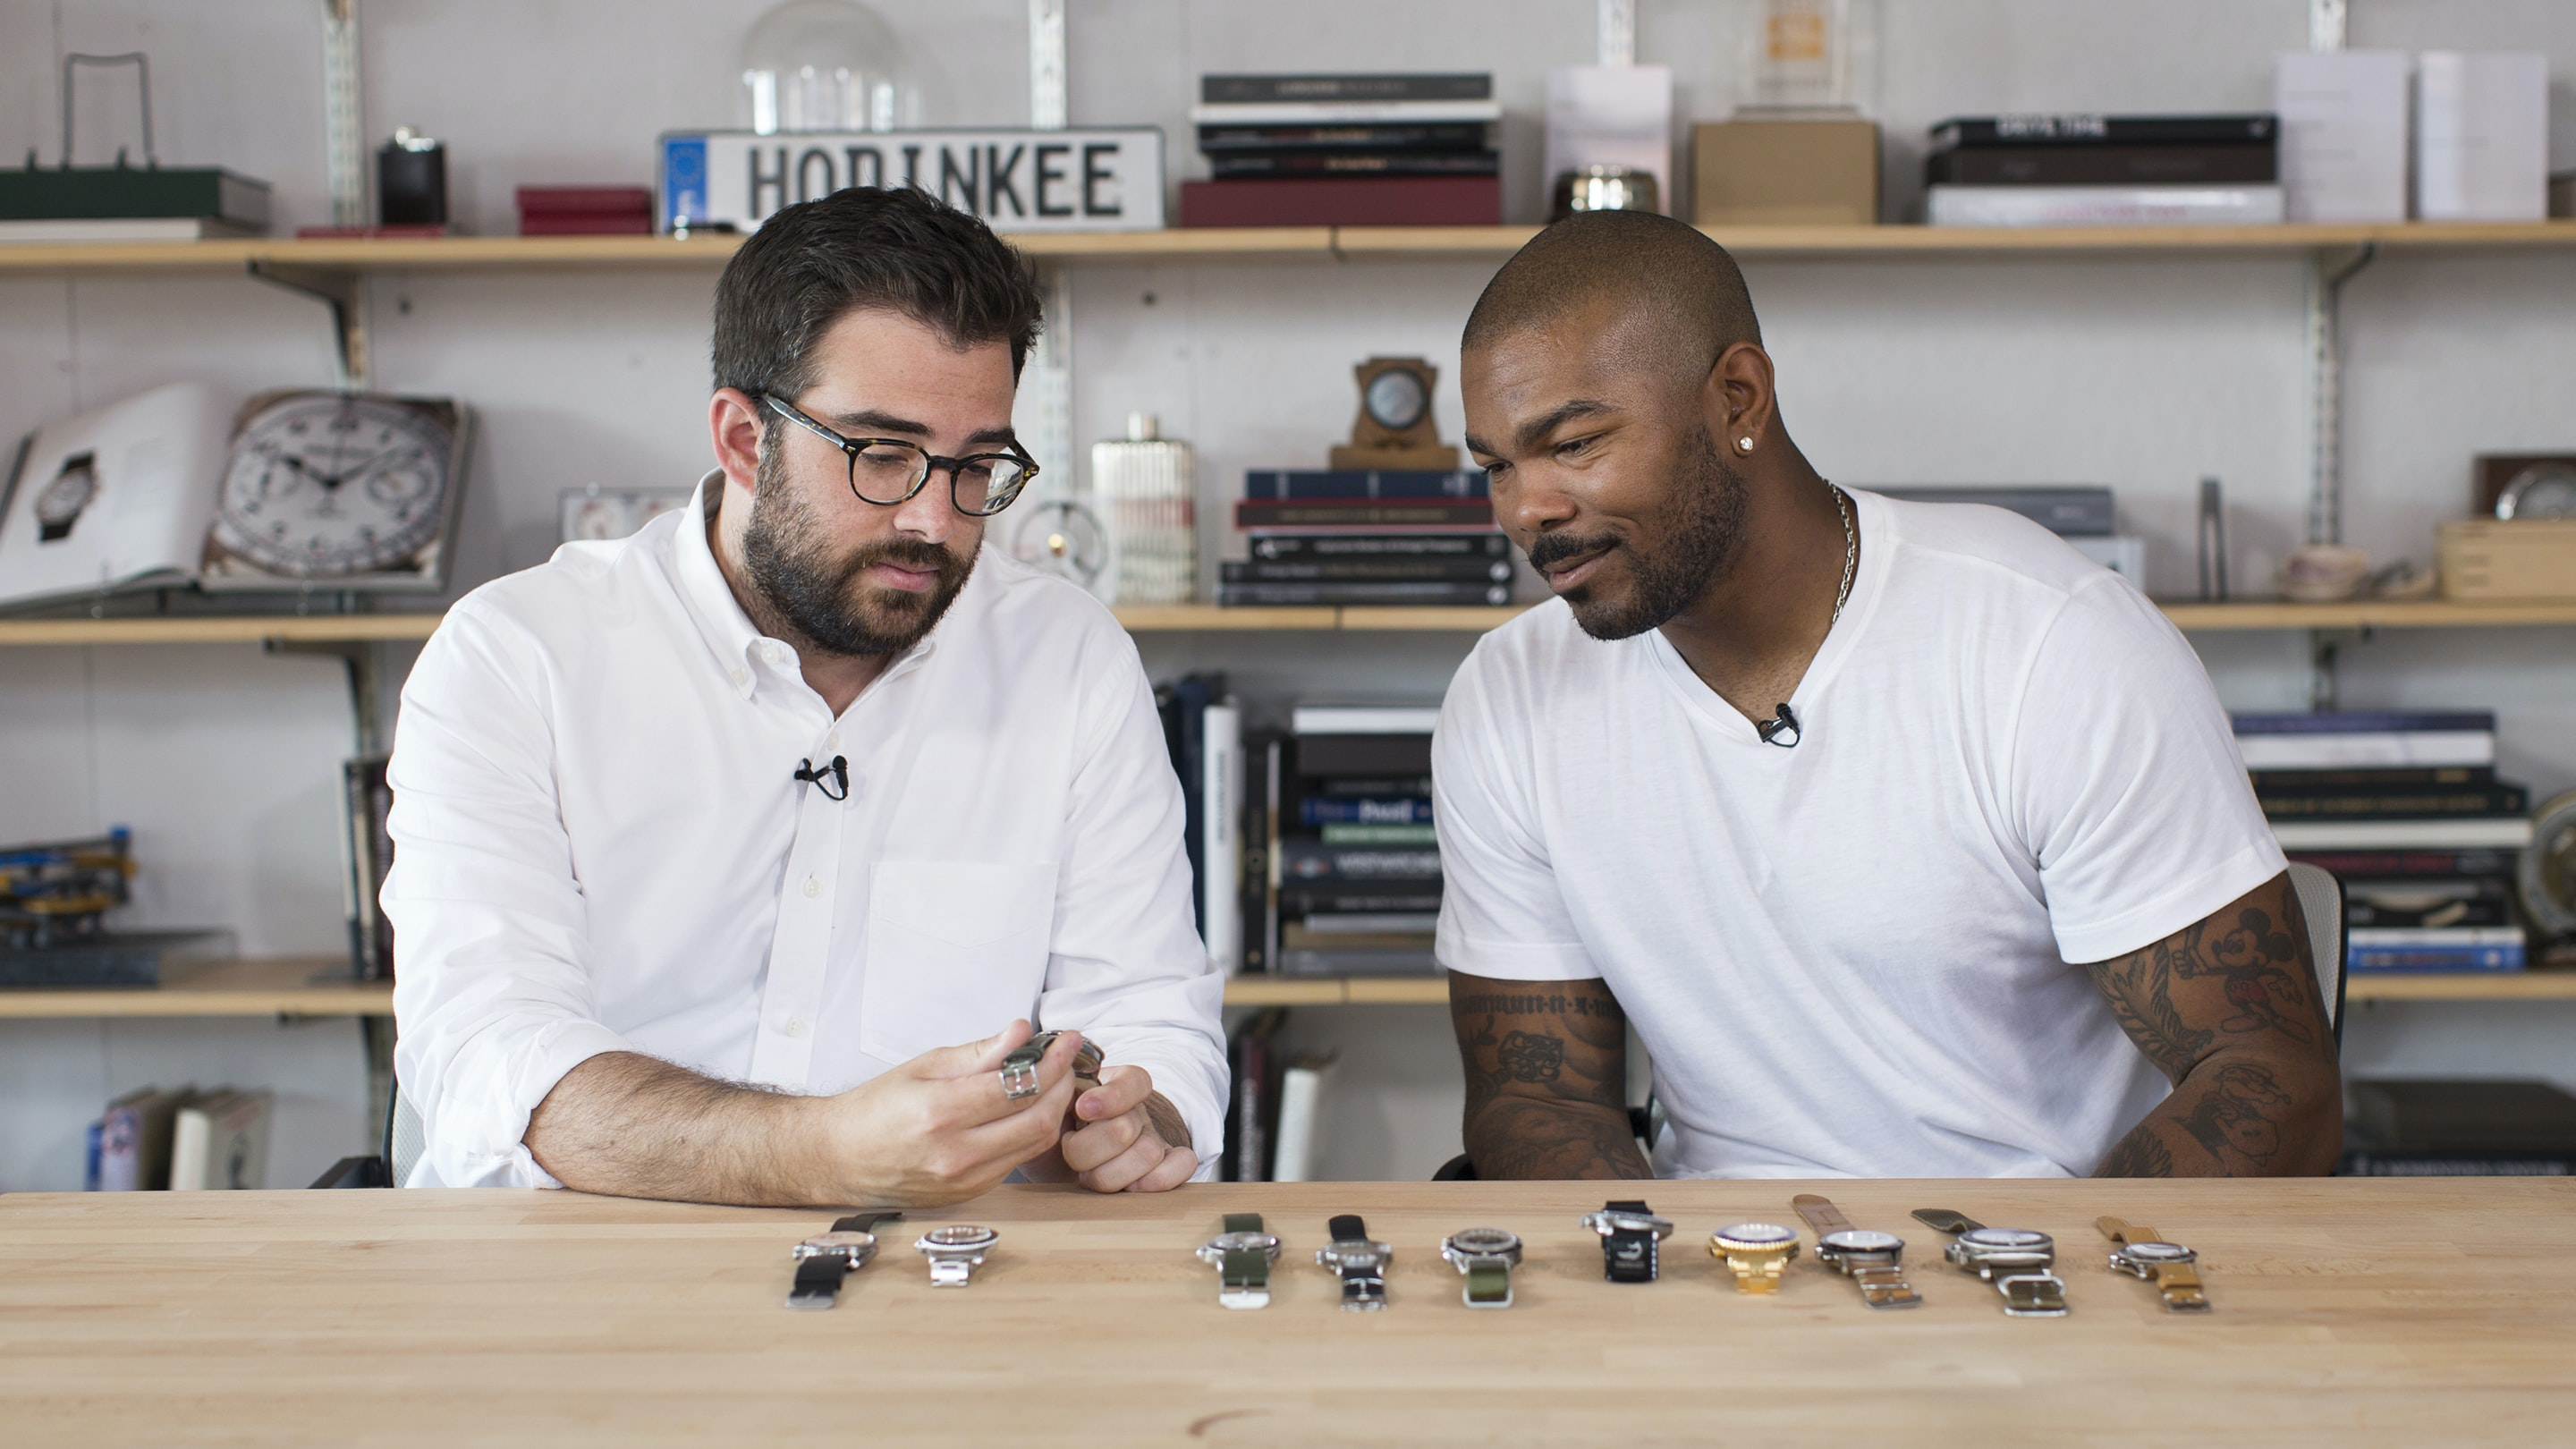 The HODINKEE 2016 Video Year In Review The HODINKEE 2016 Video Year In Review 8